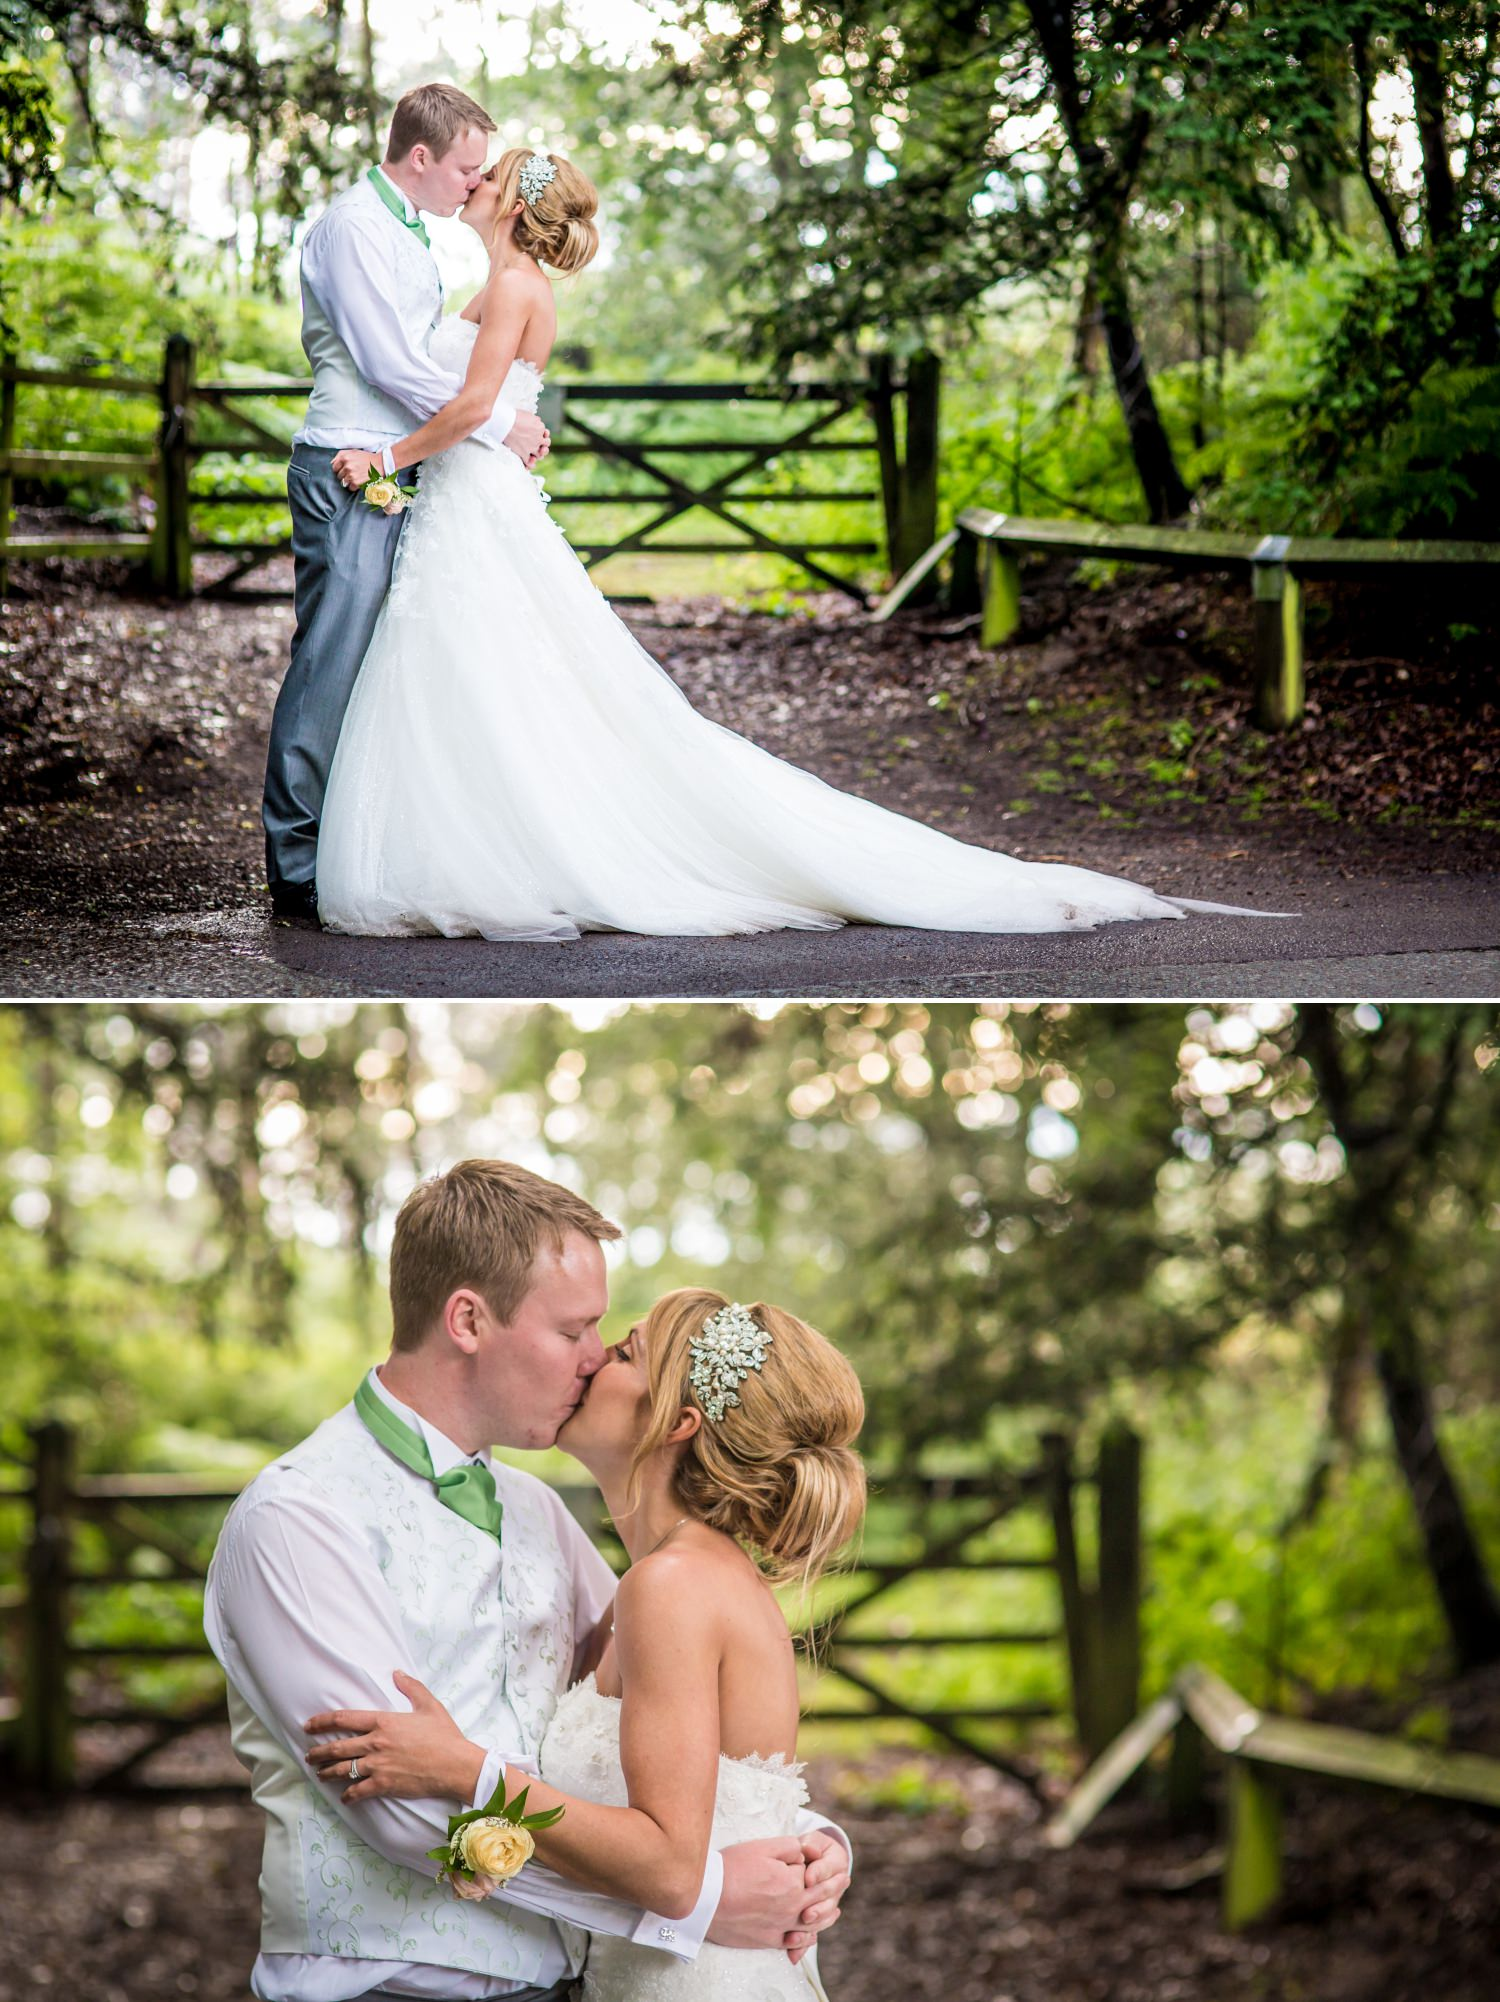 Wedding photography portraits in grounds of Cheshire venue, Peckforton Castle